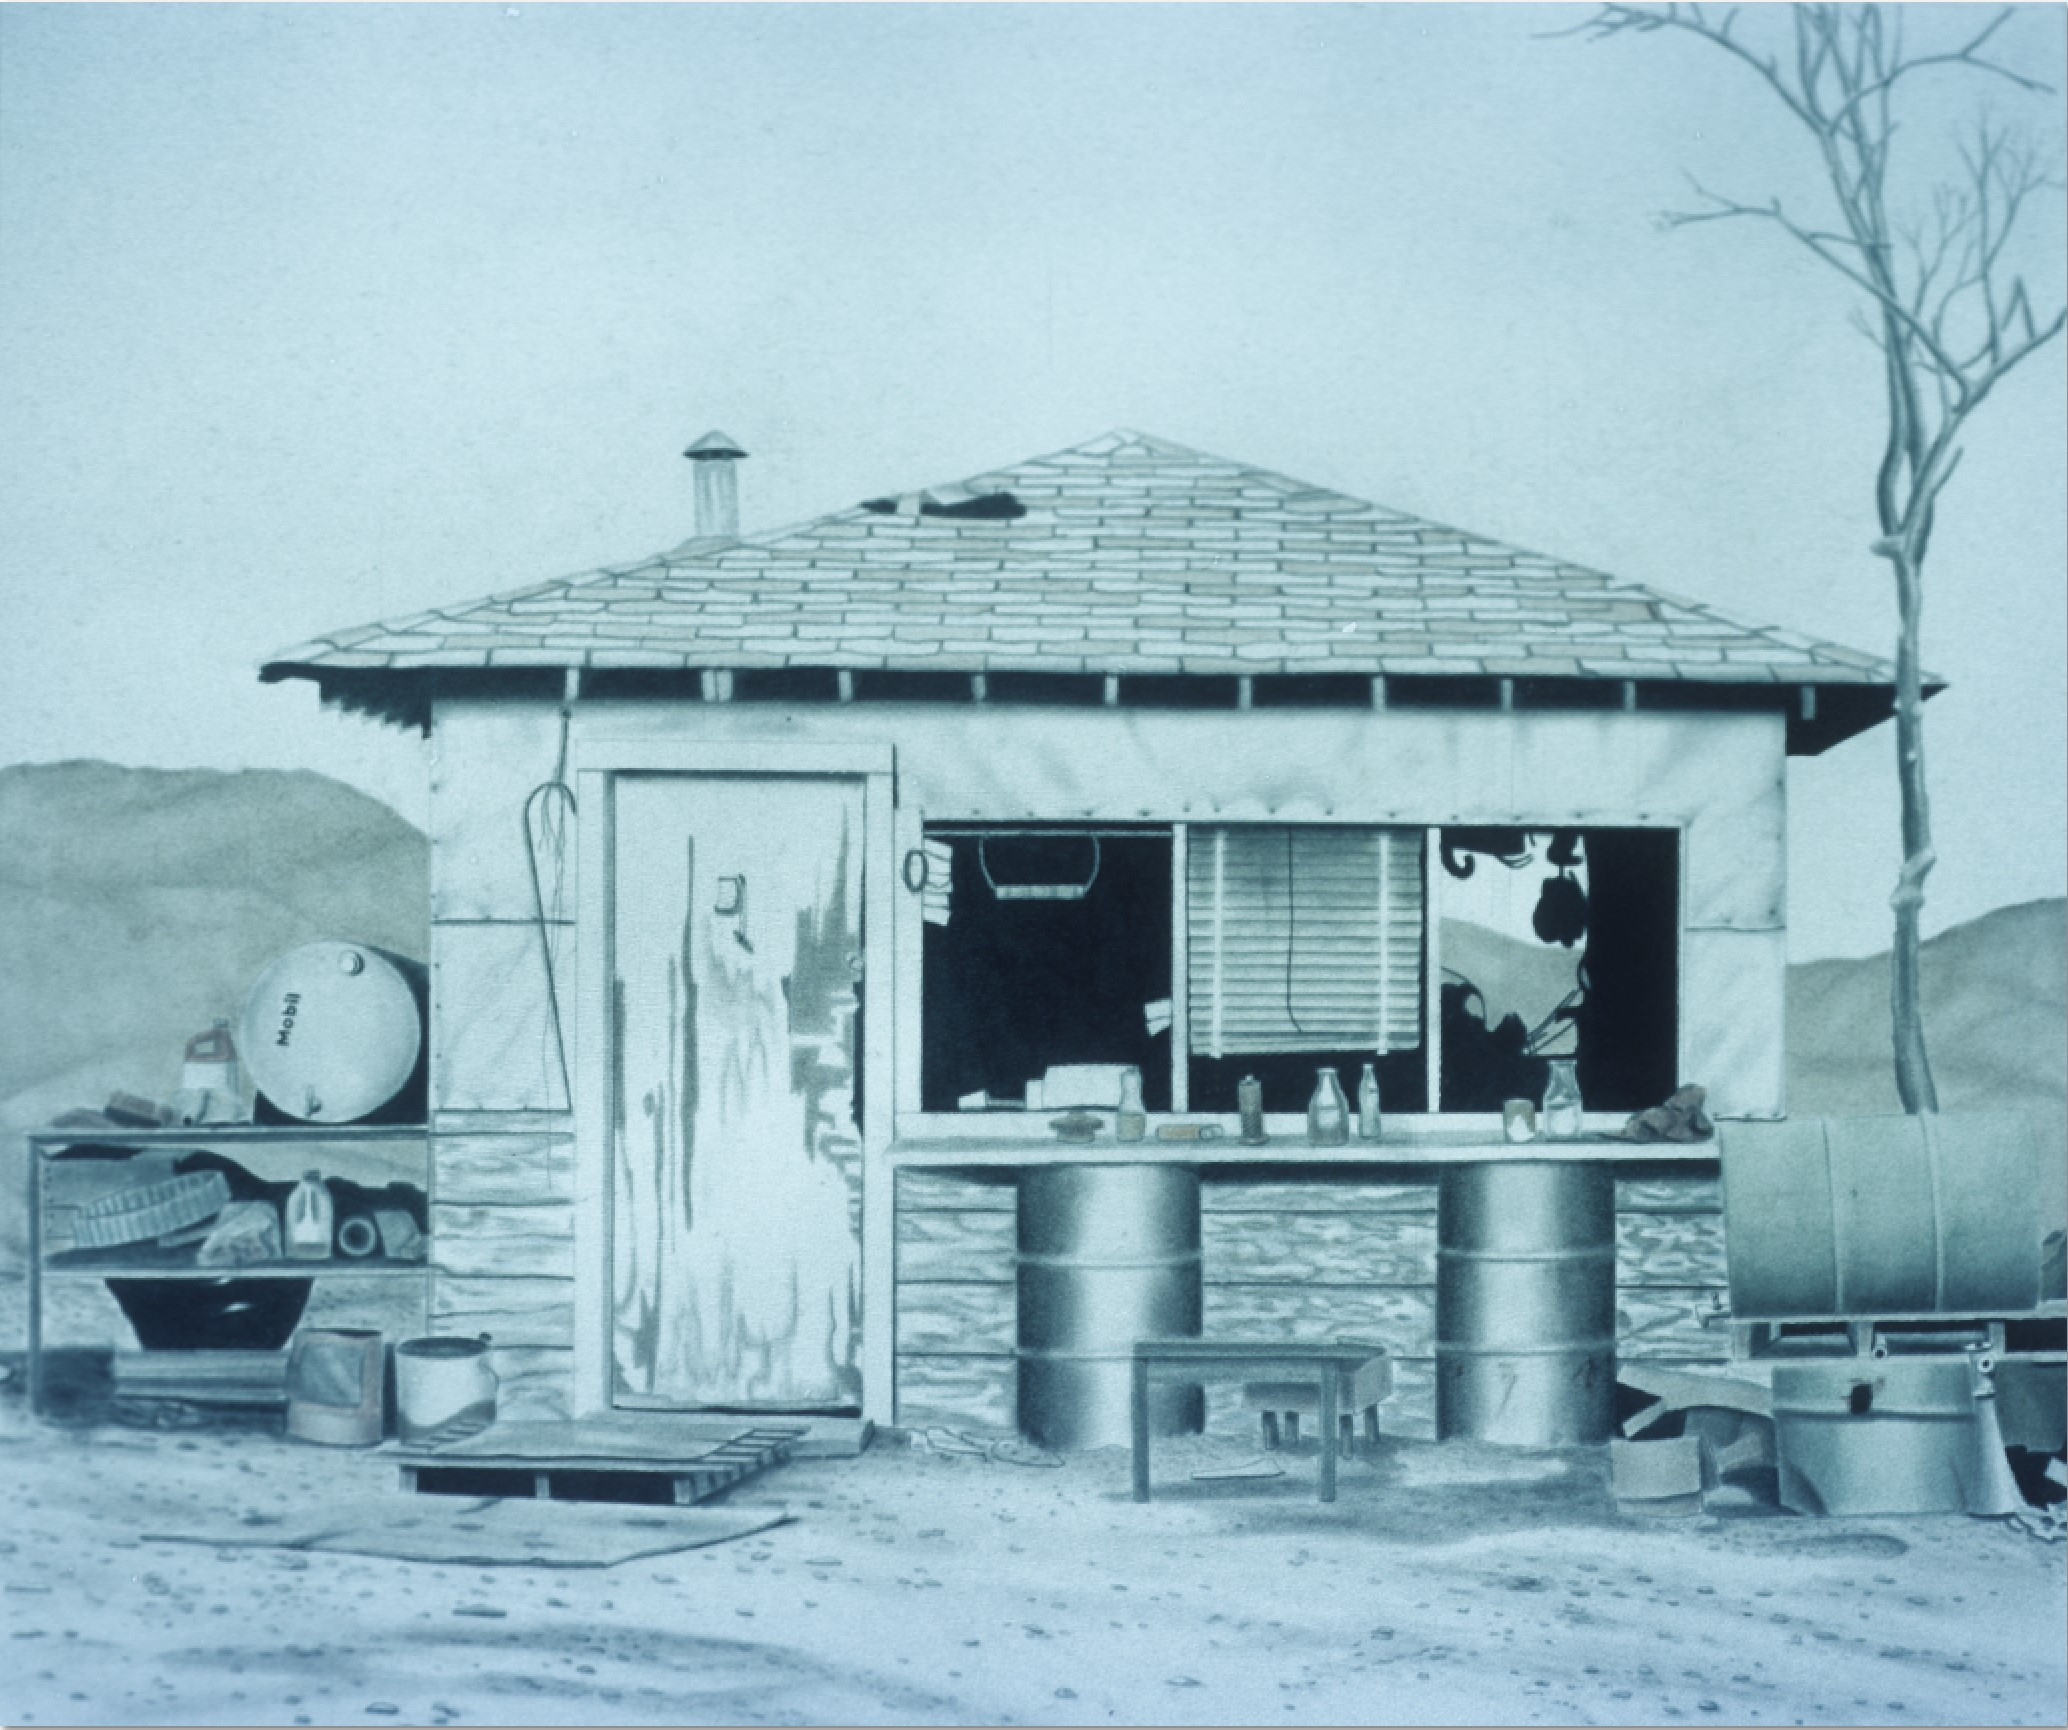 """Jan Nelson, """"out to Lunch,"""" oil pastel and graphite on rag, 1975. This photograph is courtesy of Jan Nelson."""